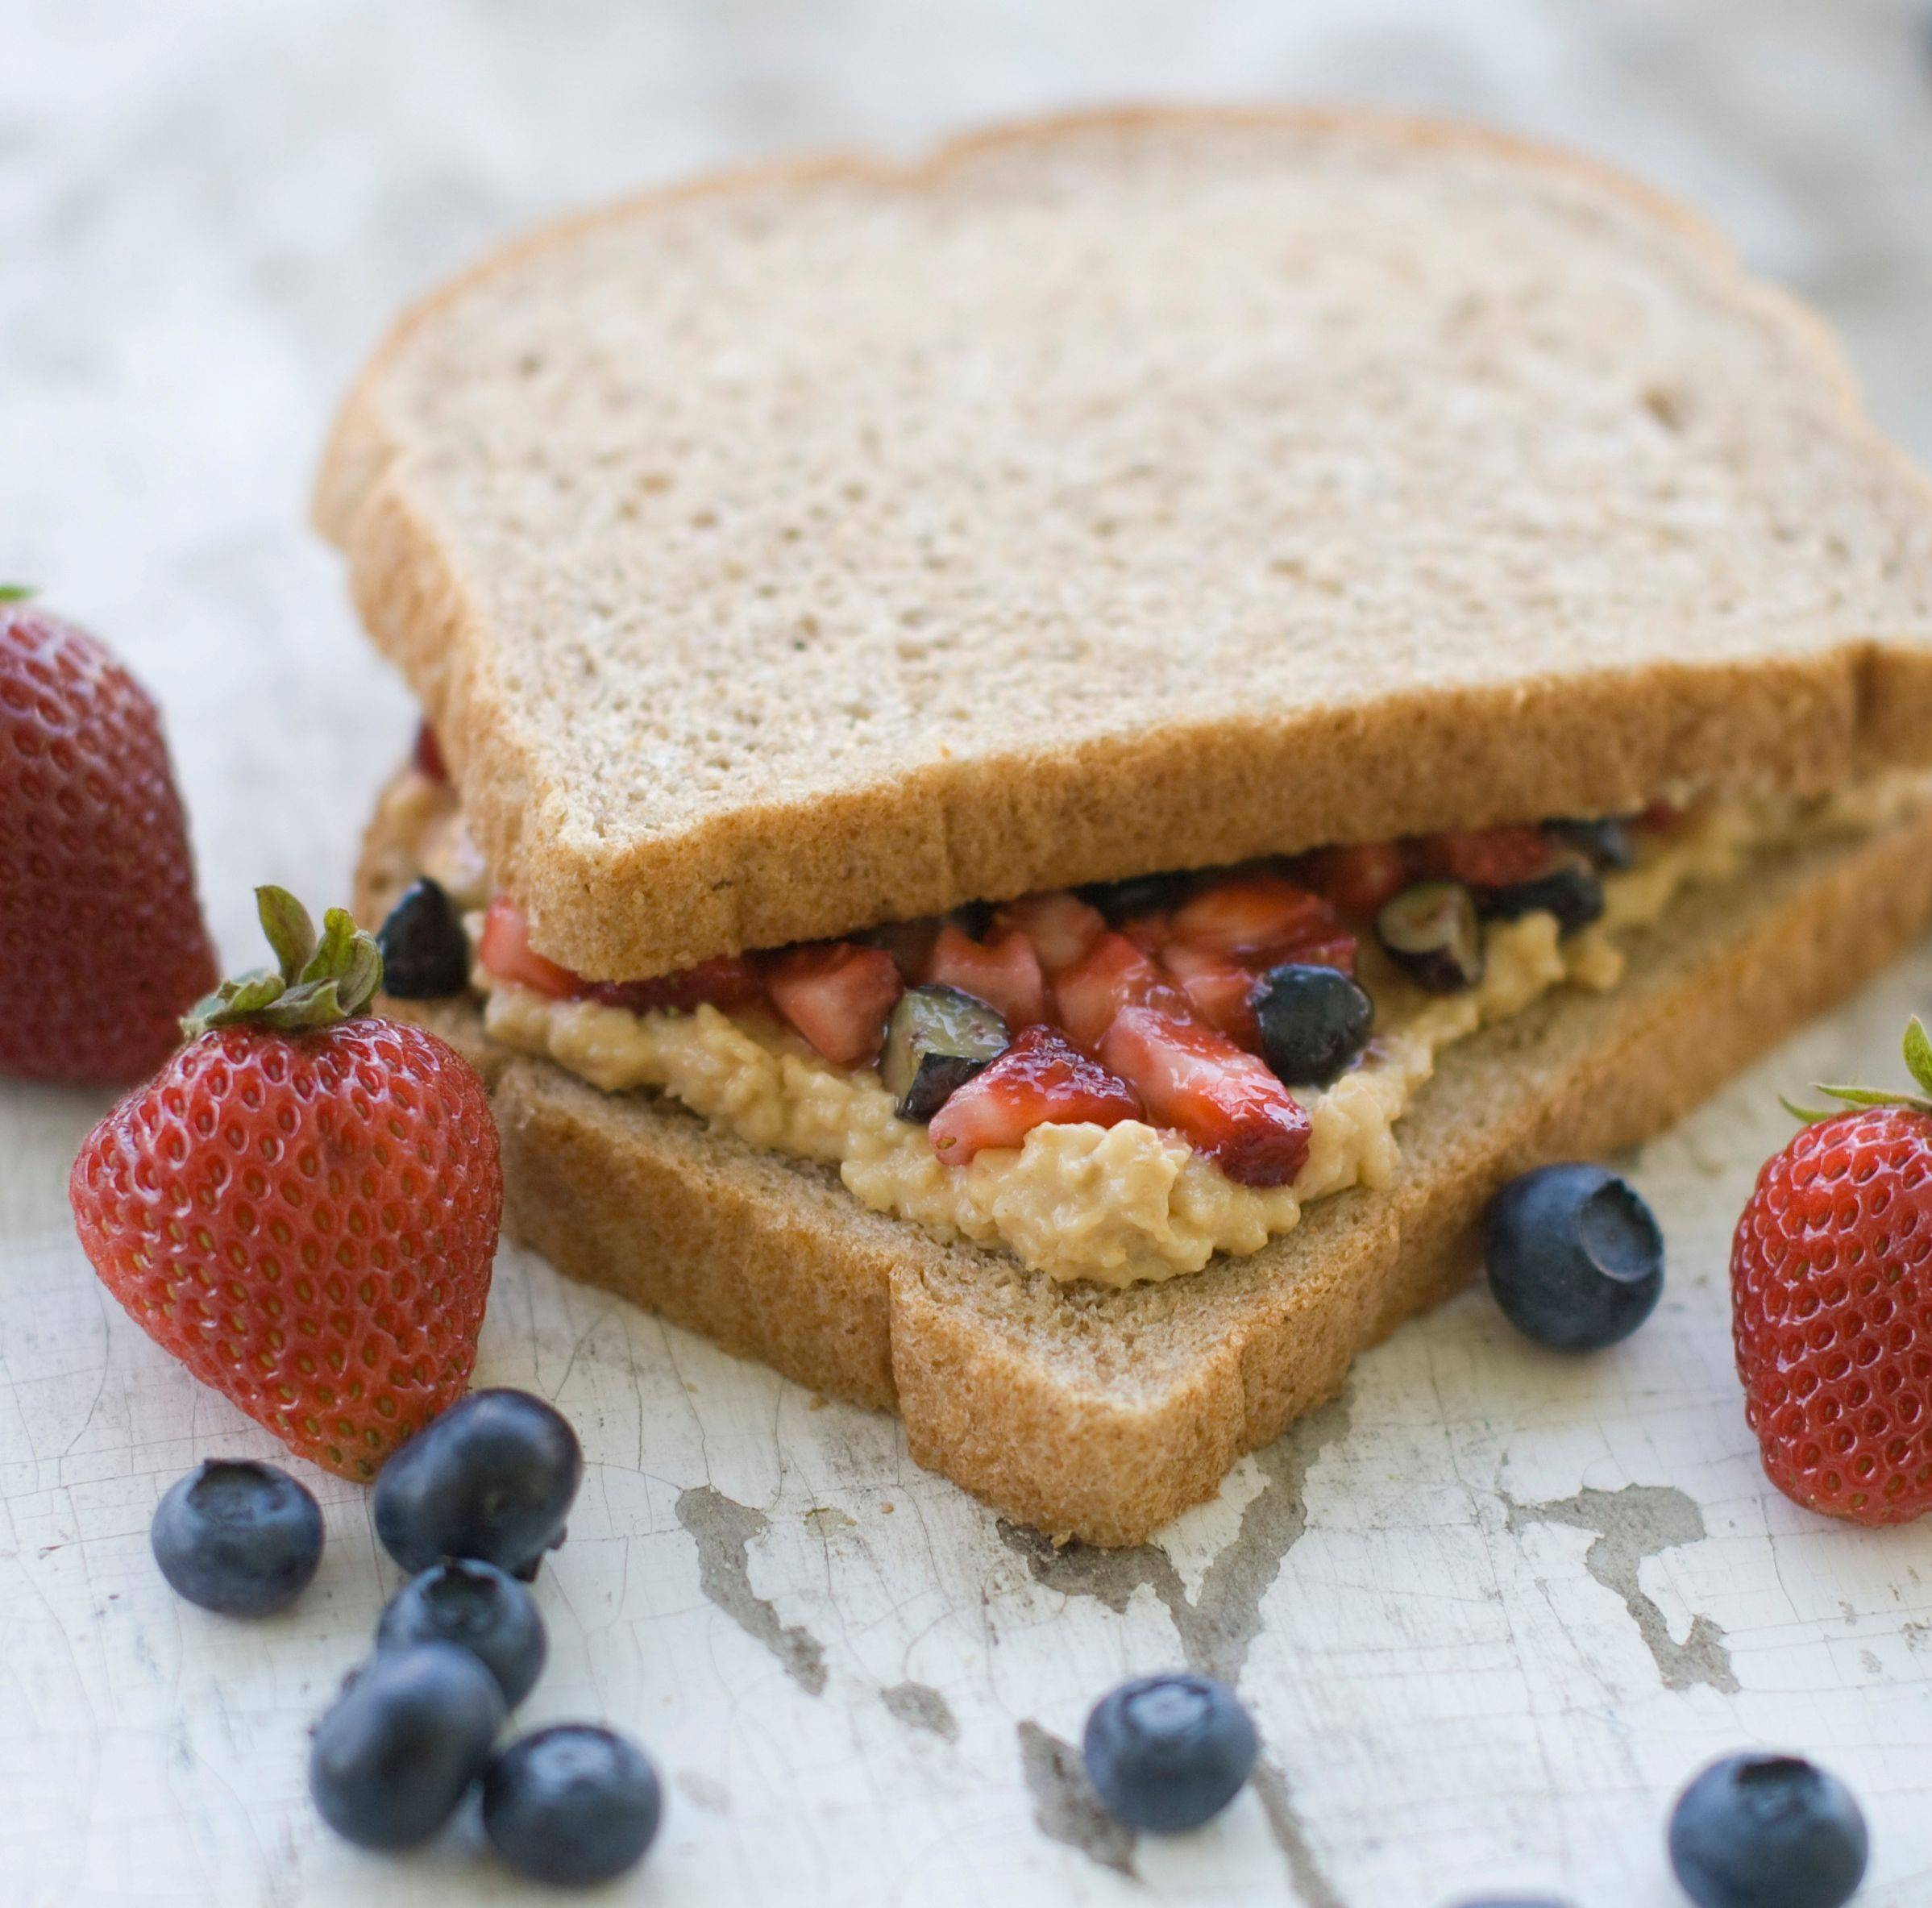 Fresh berries and natural fruit spread make for a healthier PB&J sandwich.